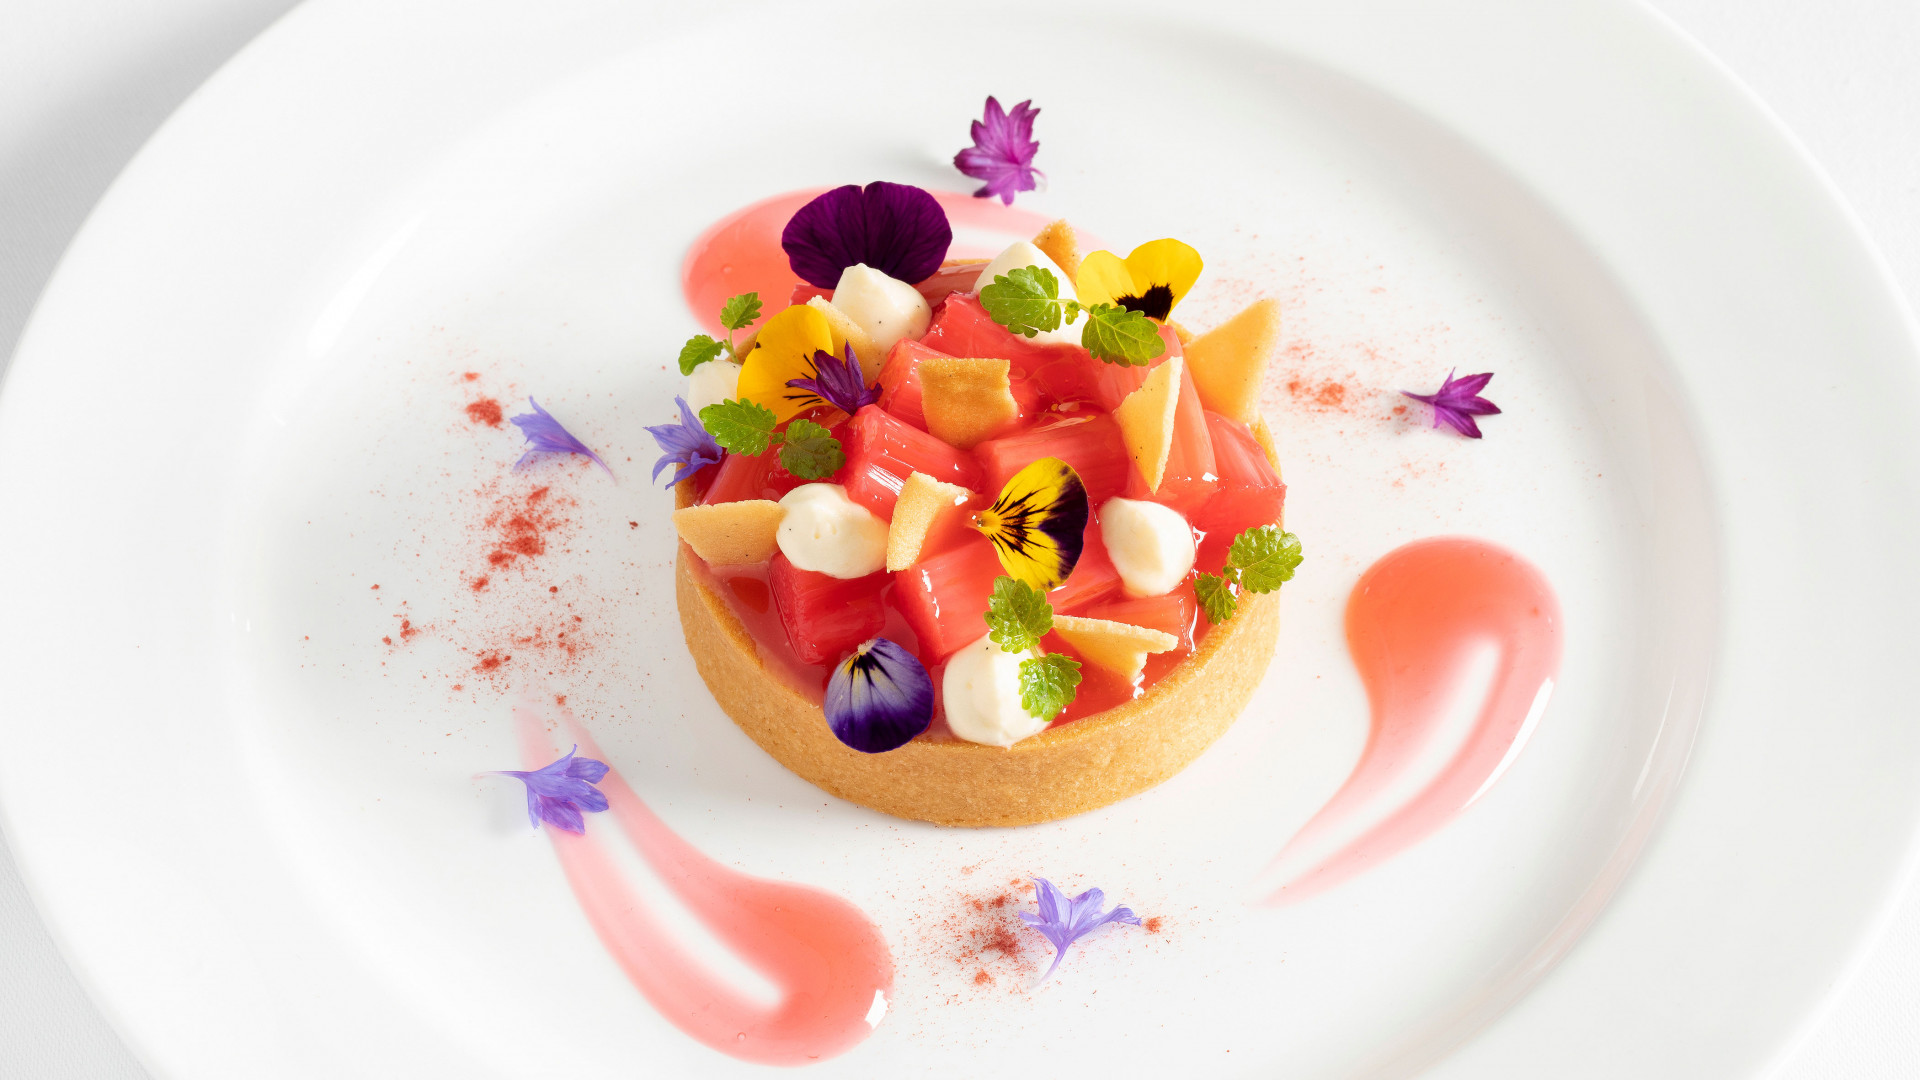 Rhubarb and custard tart at The Ivy